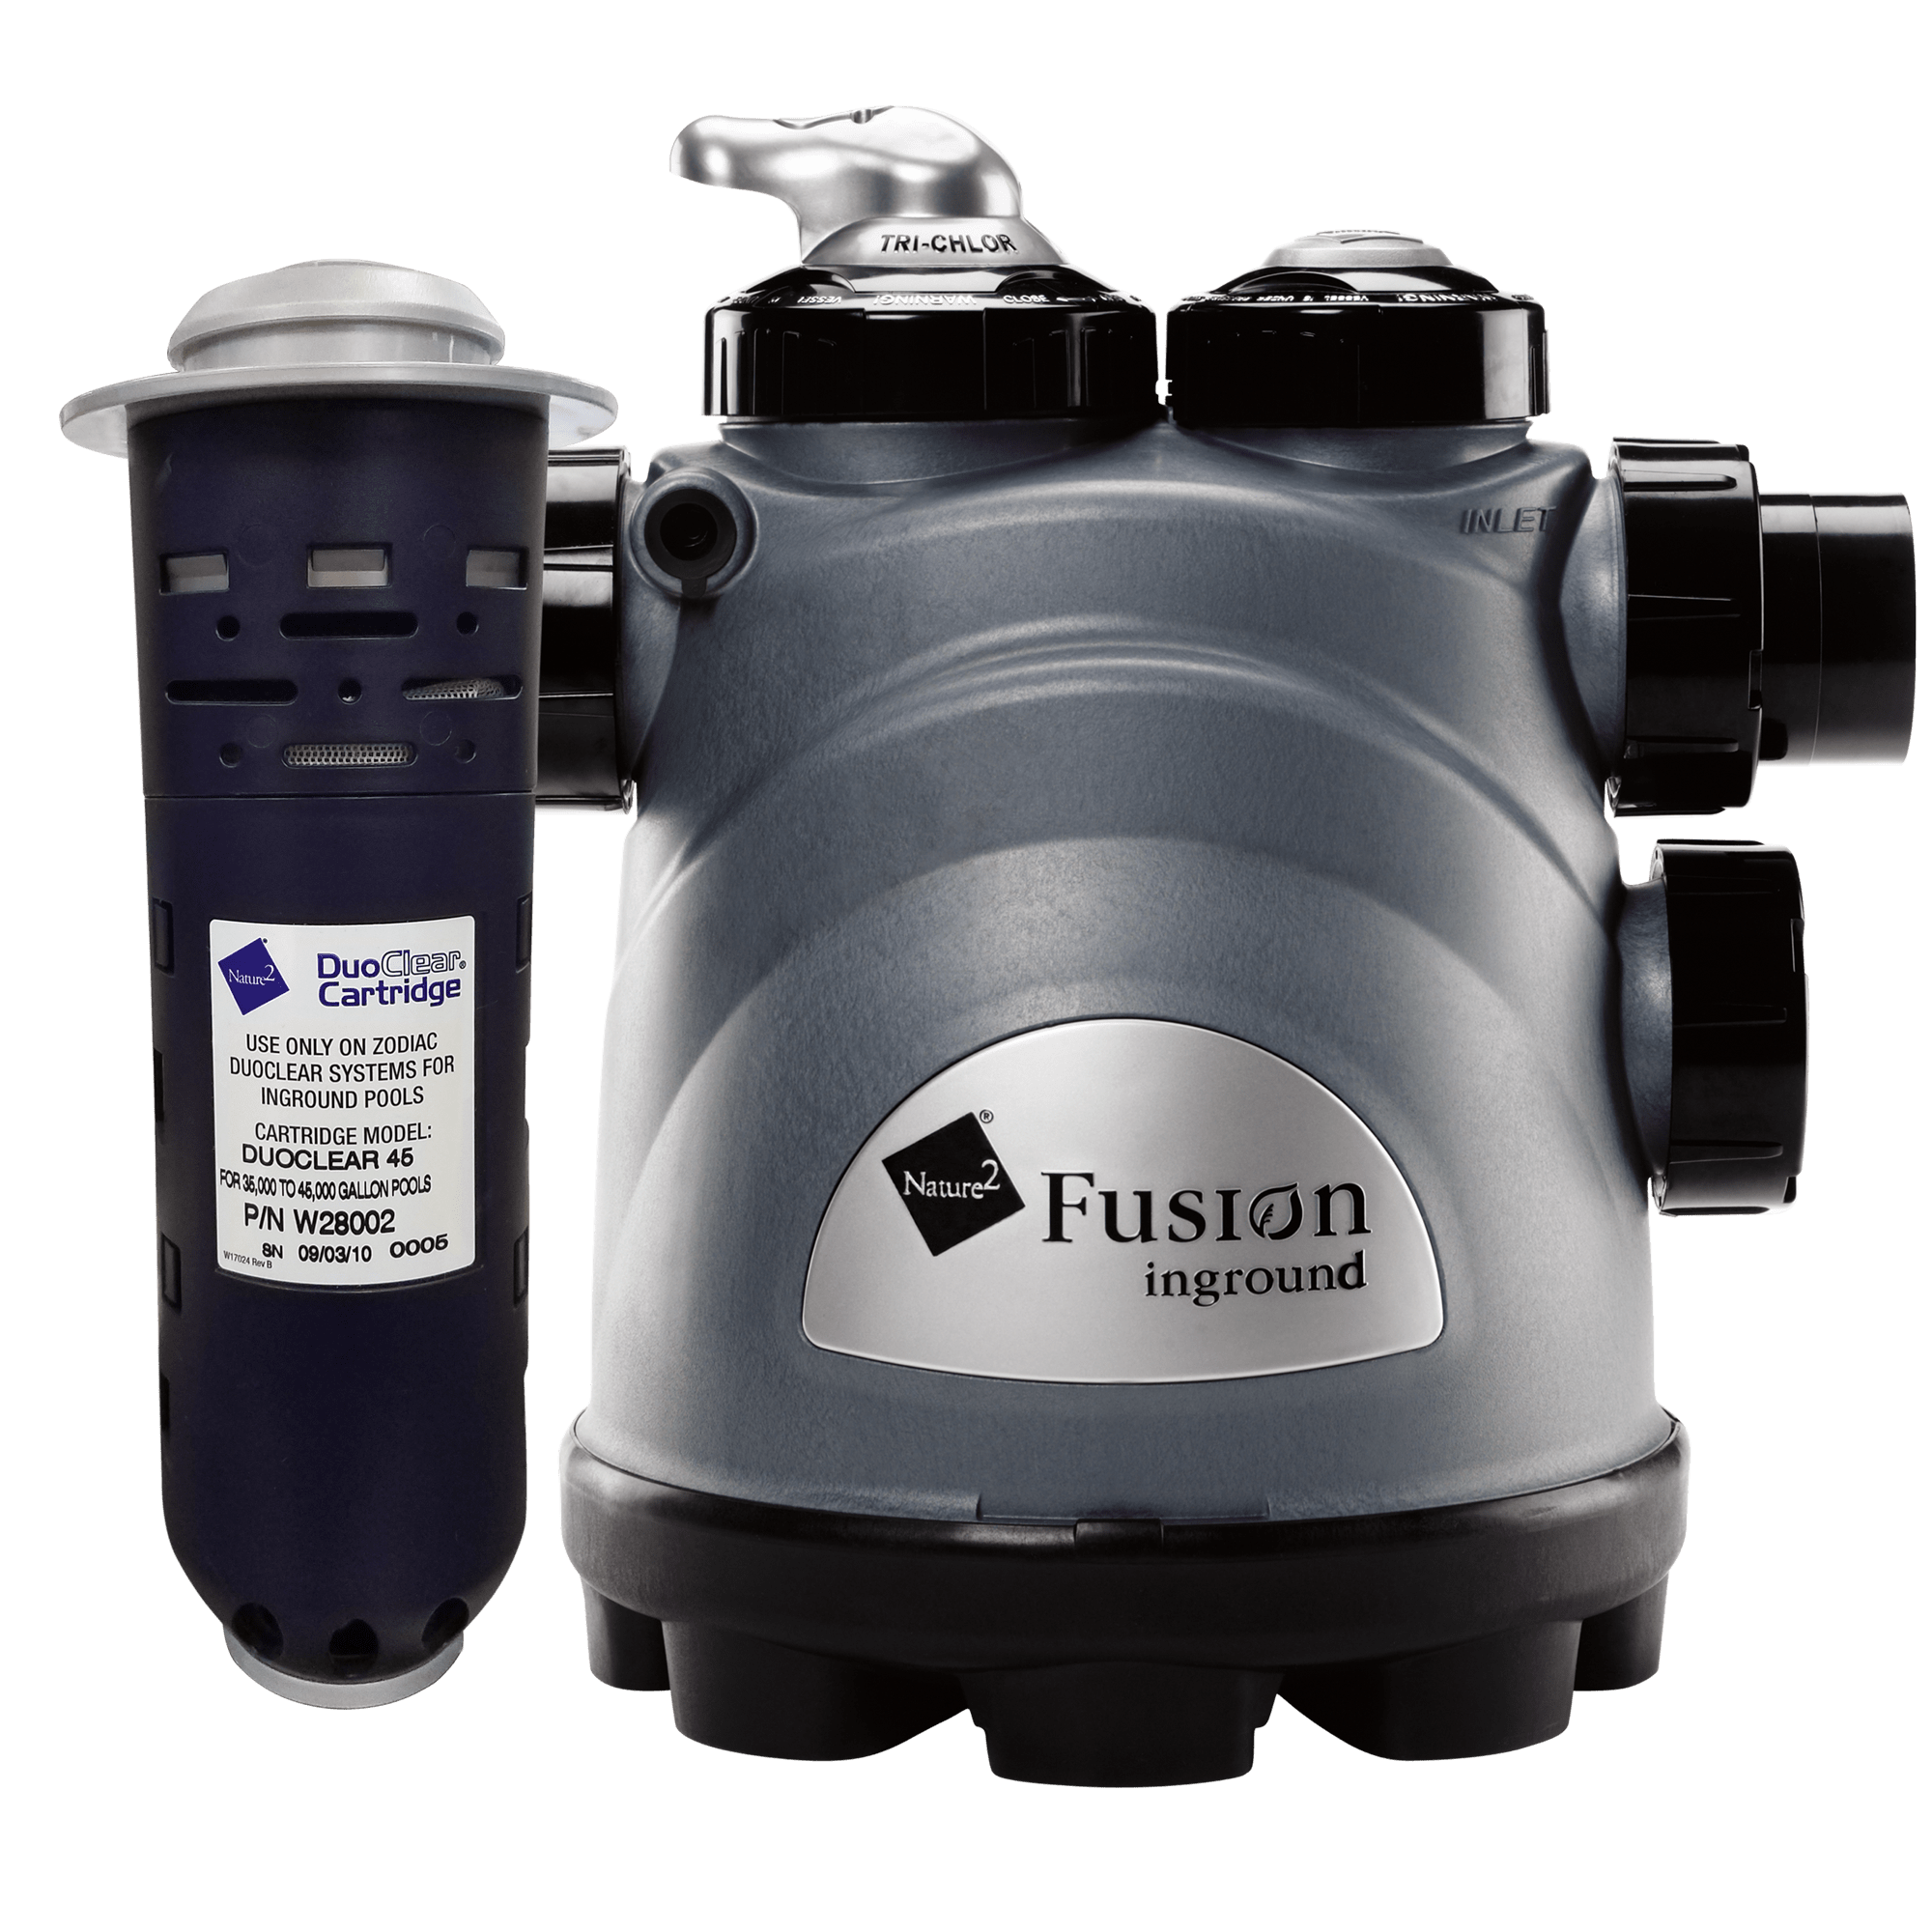 Nature2 Fusion Inground Mineral Sanitizing System